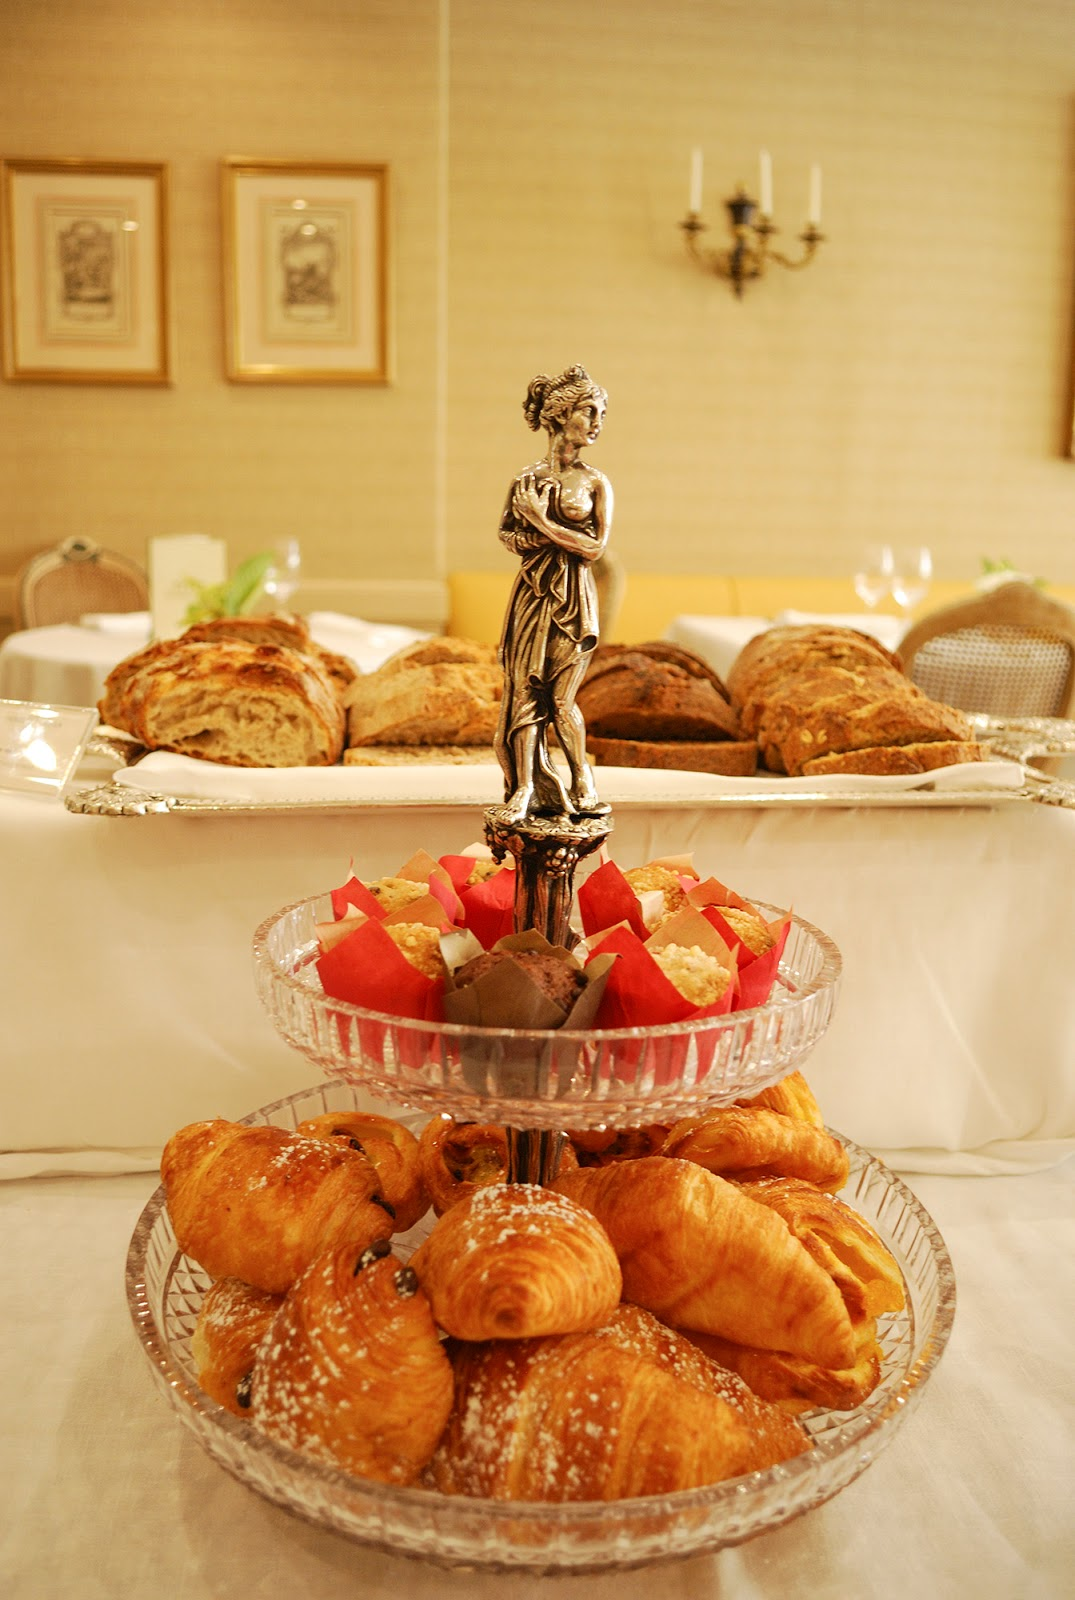 Hotel Orfila brunch Madrid Spain five star buffet